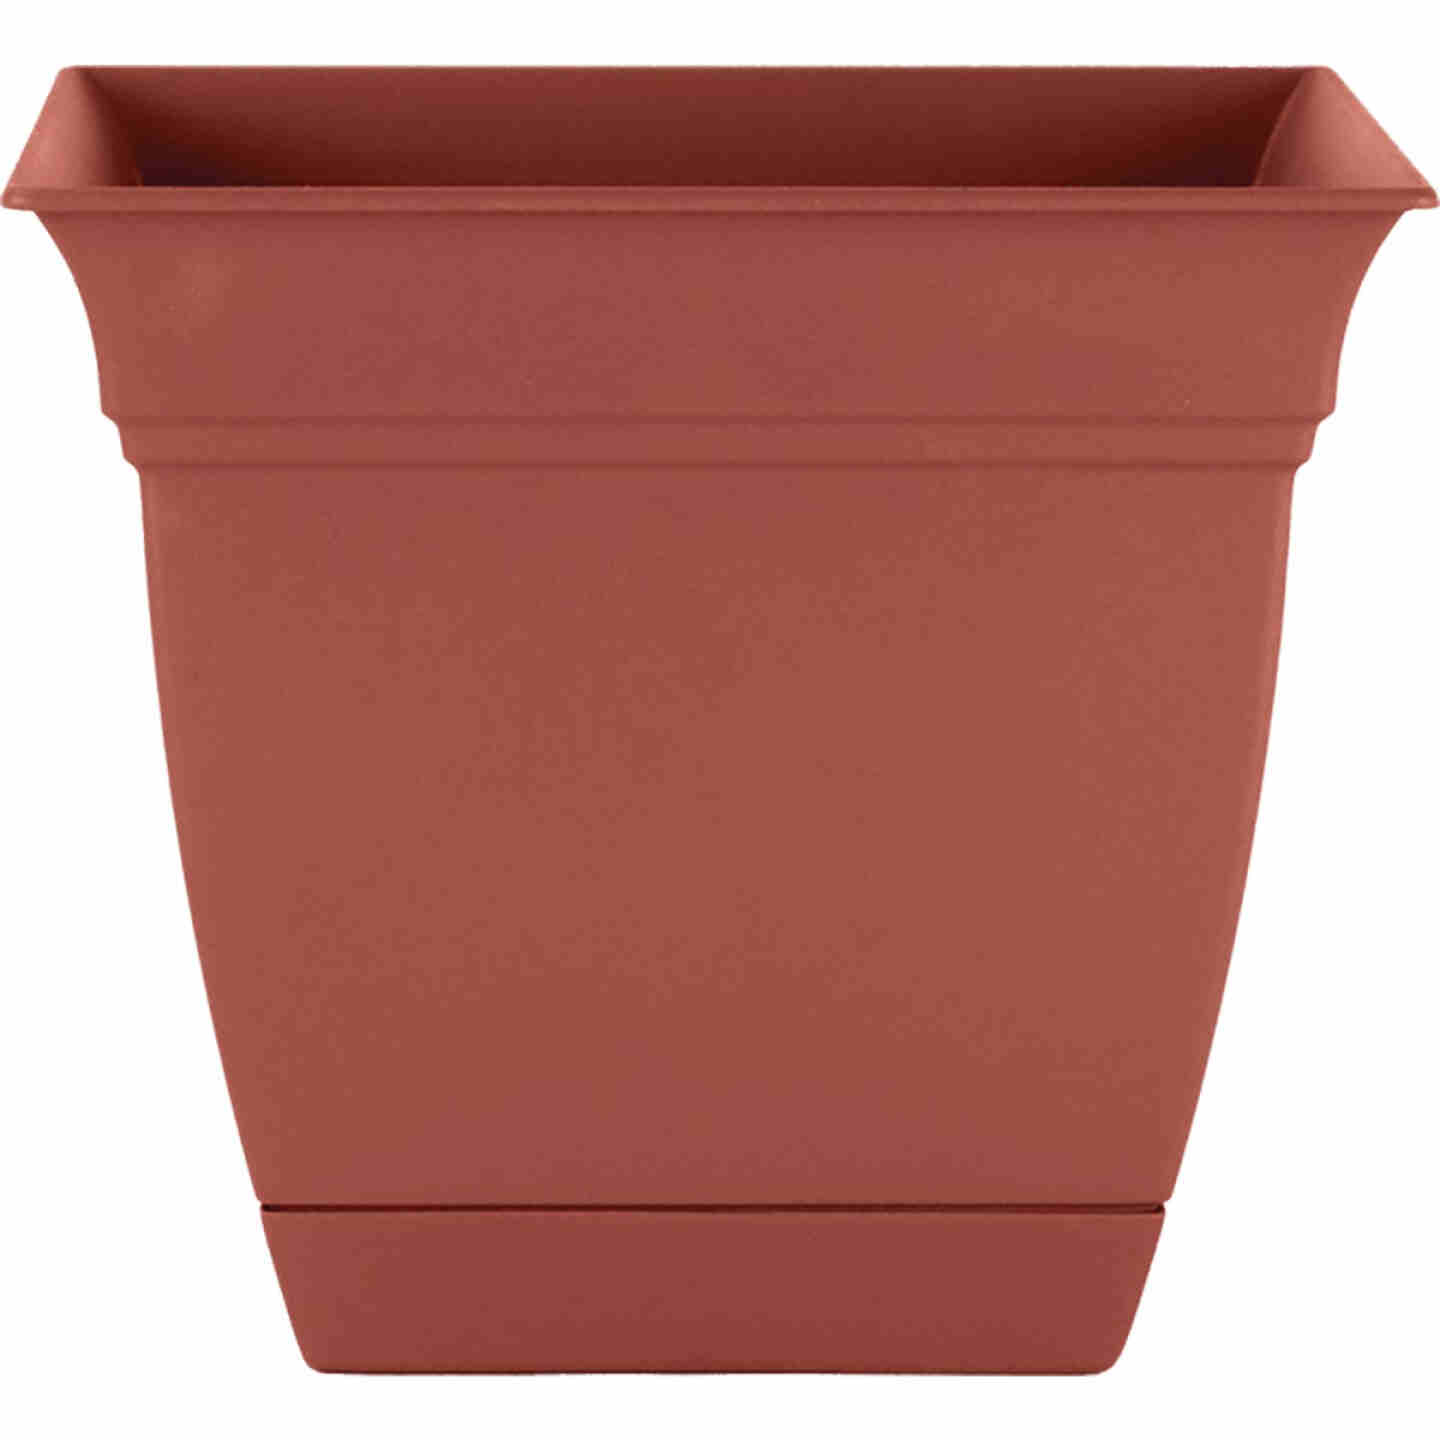 HC Companies Eclipse 8 In. x 8 In. x 7 In. Resin Clay Planter Image 1